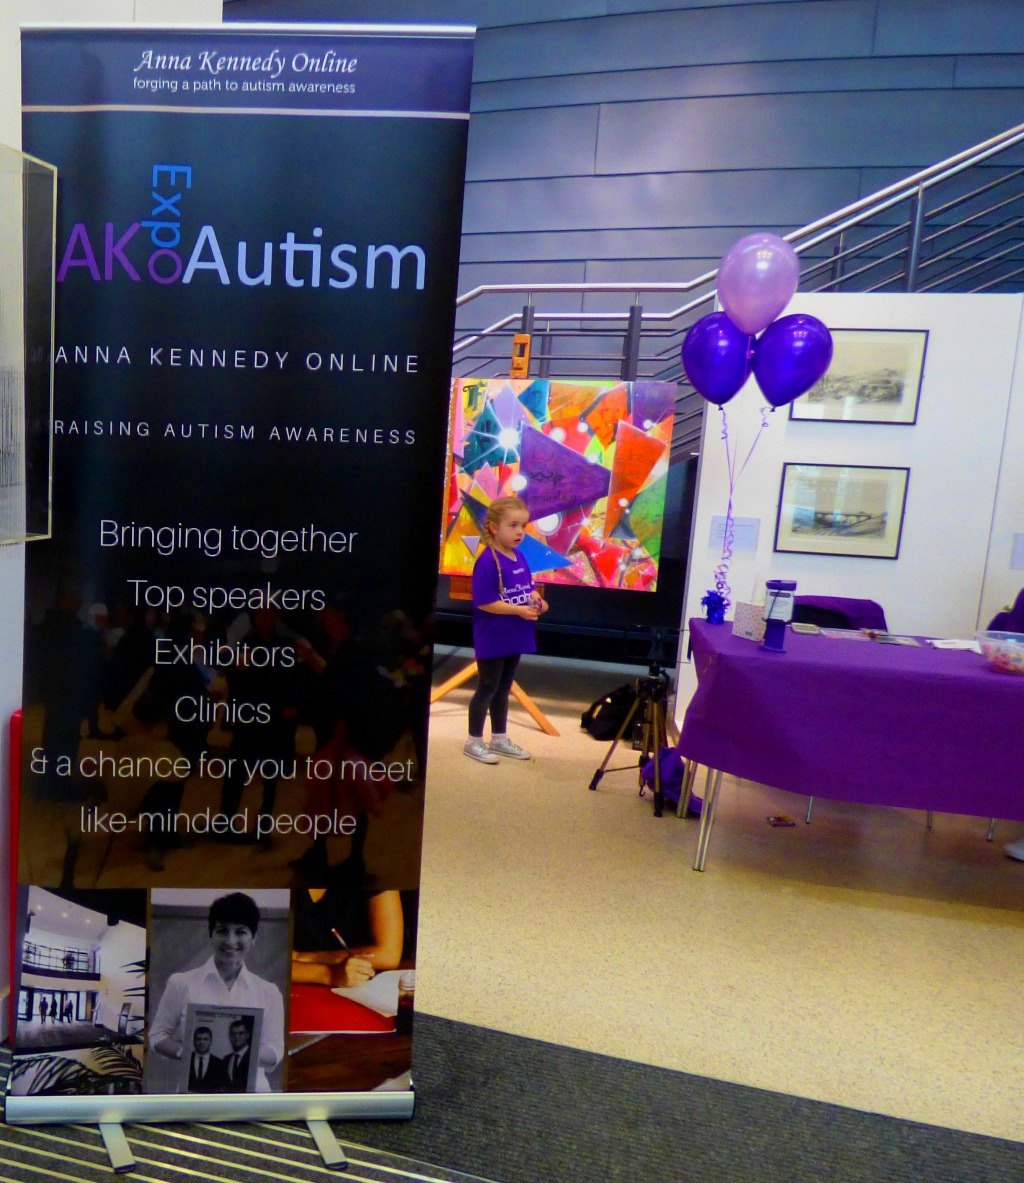 Autism Events III: Saturday in London Part 1